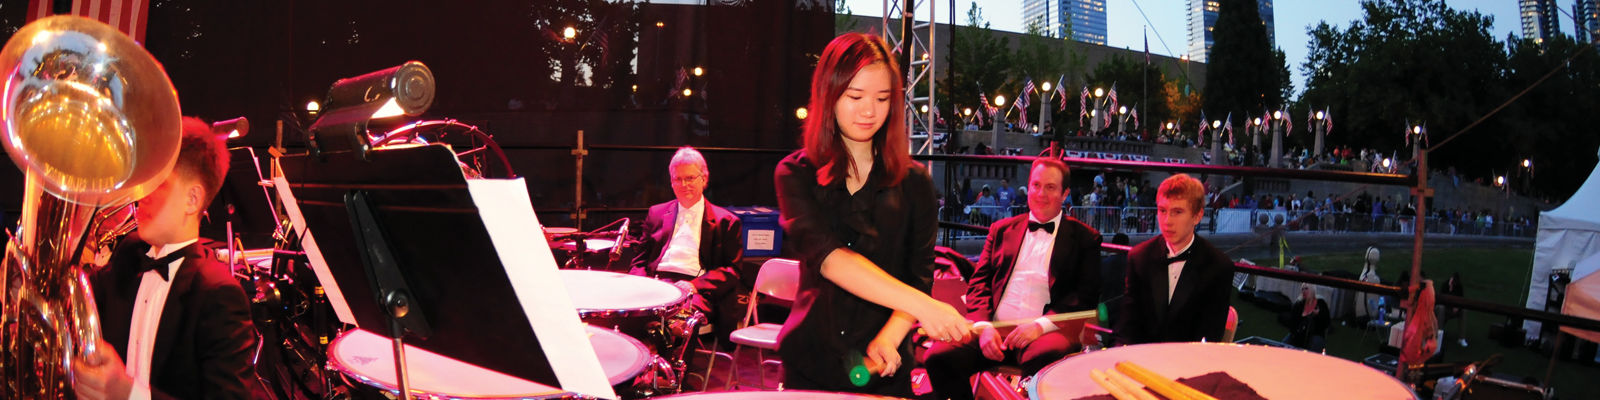 orchestra playing, a woman playing on drums